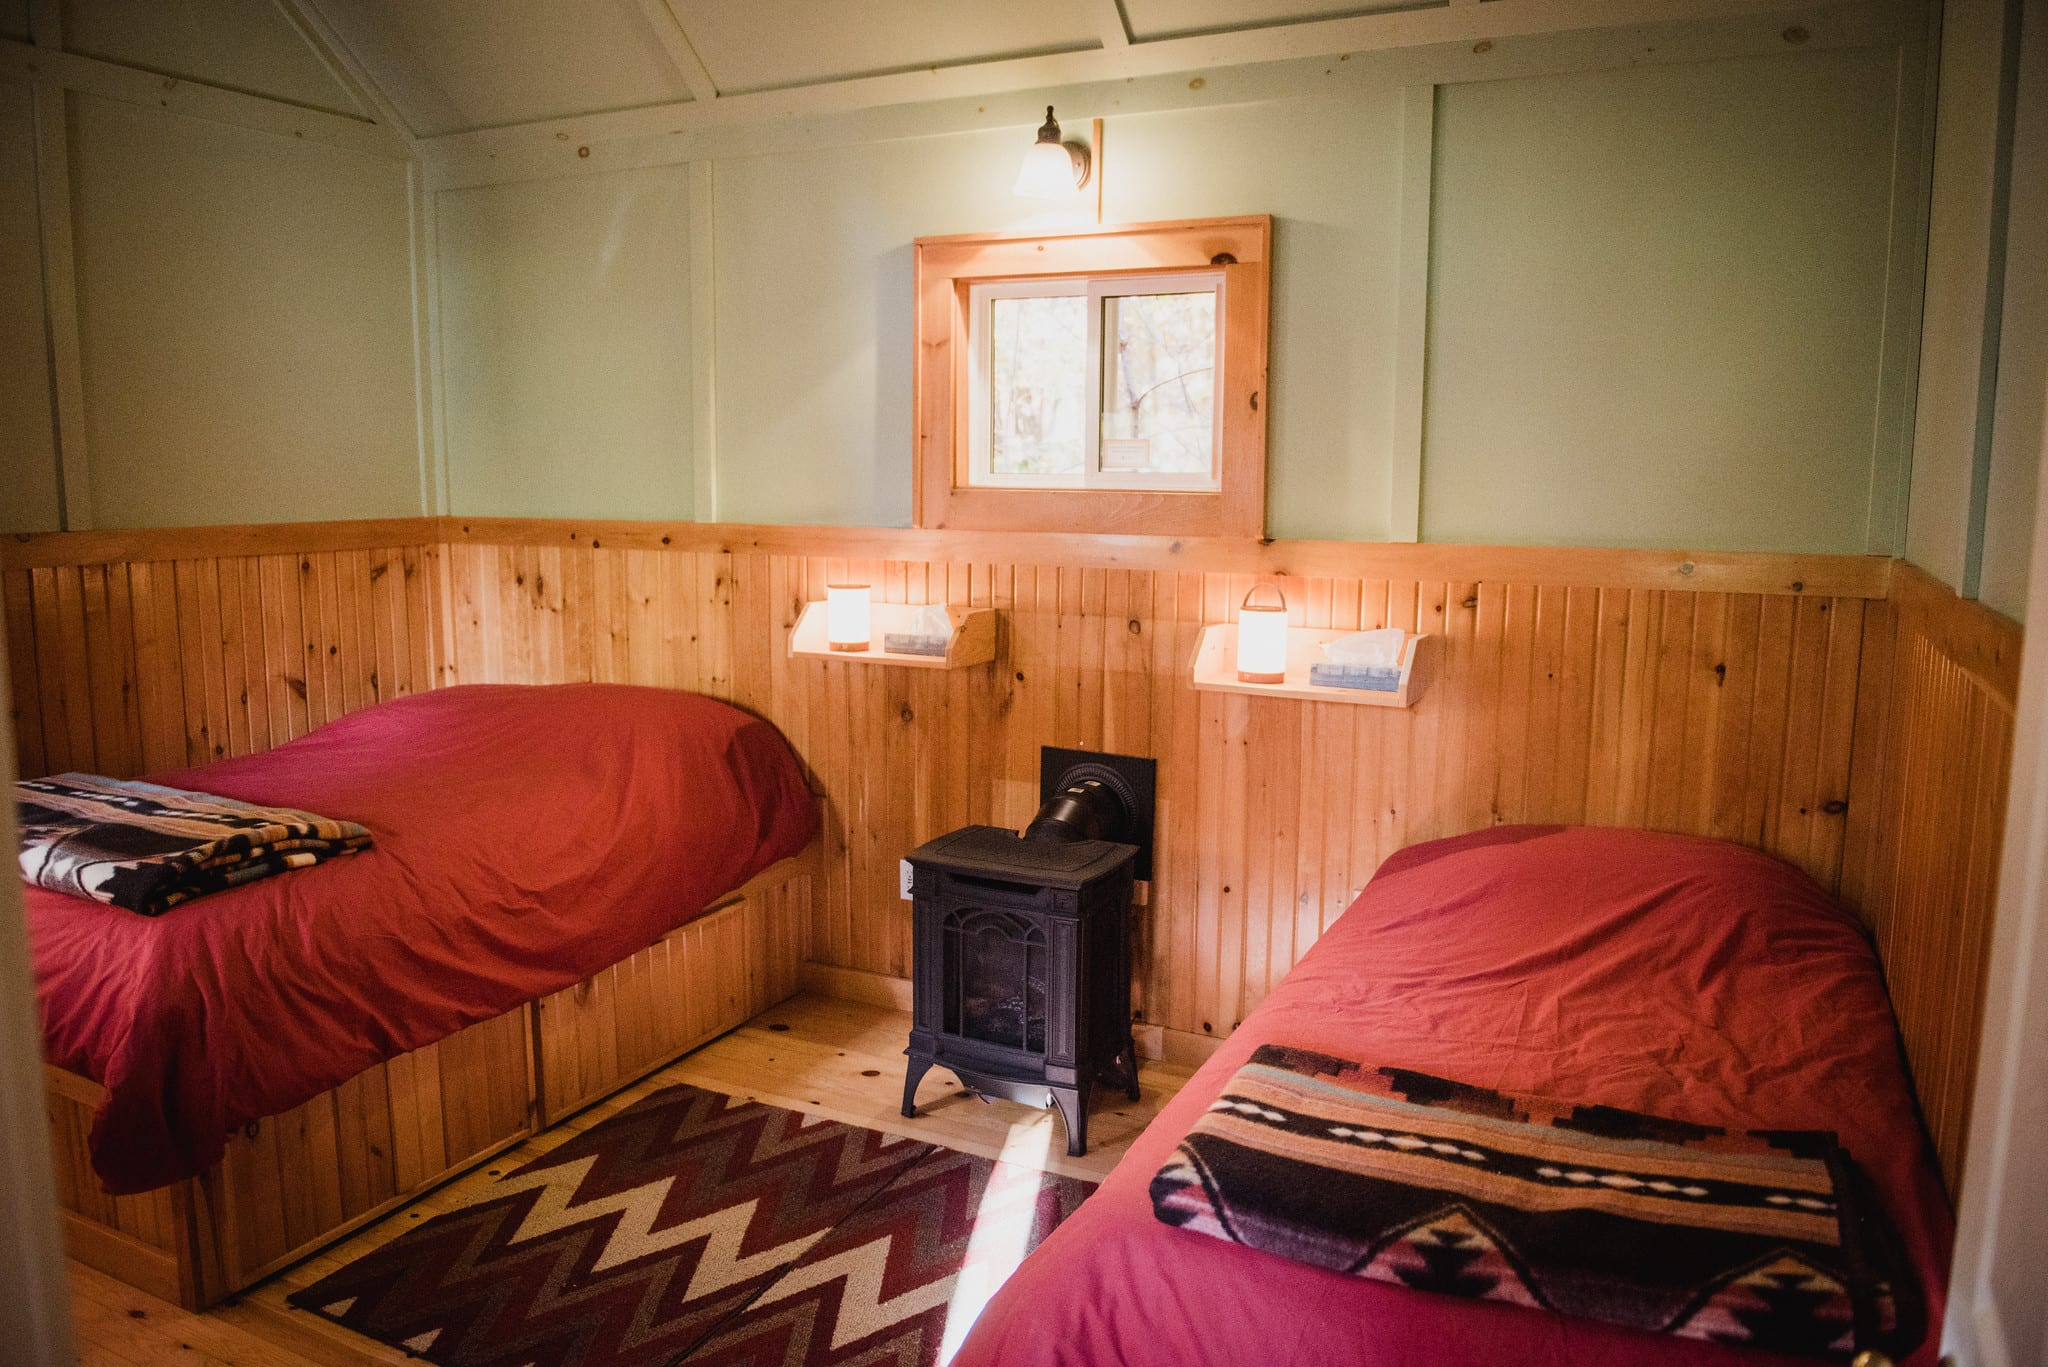 Two nicely made beds in a studio cabin